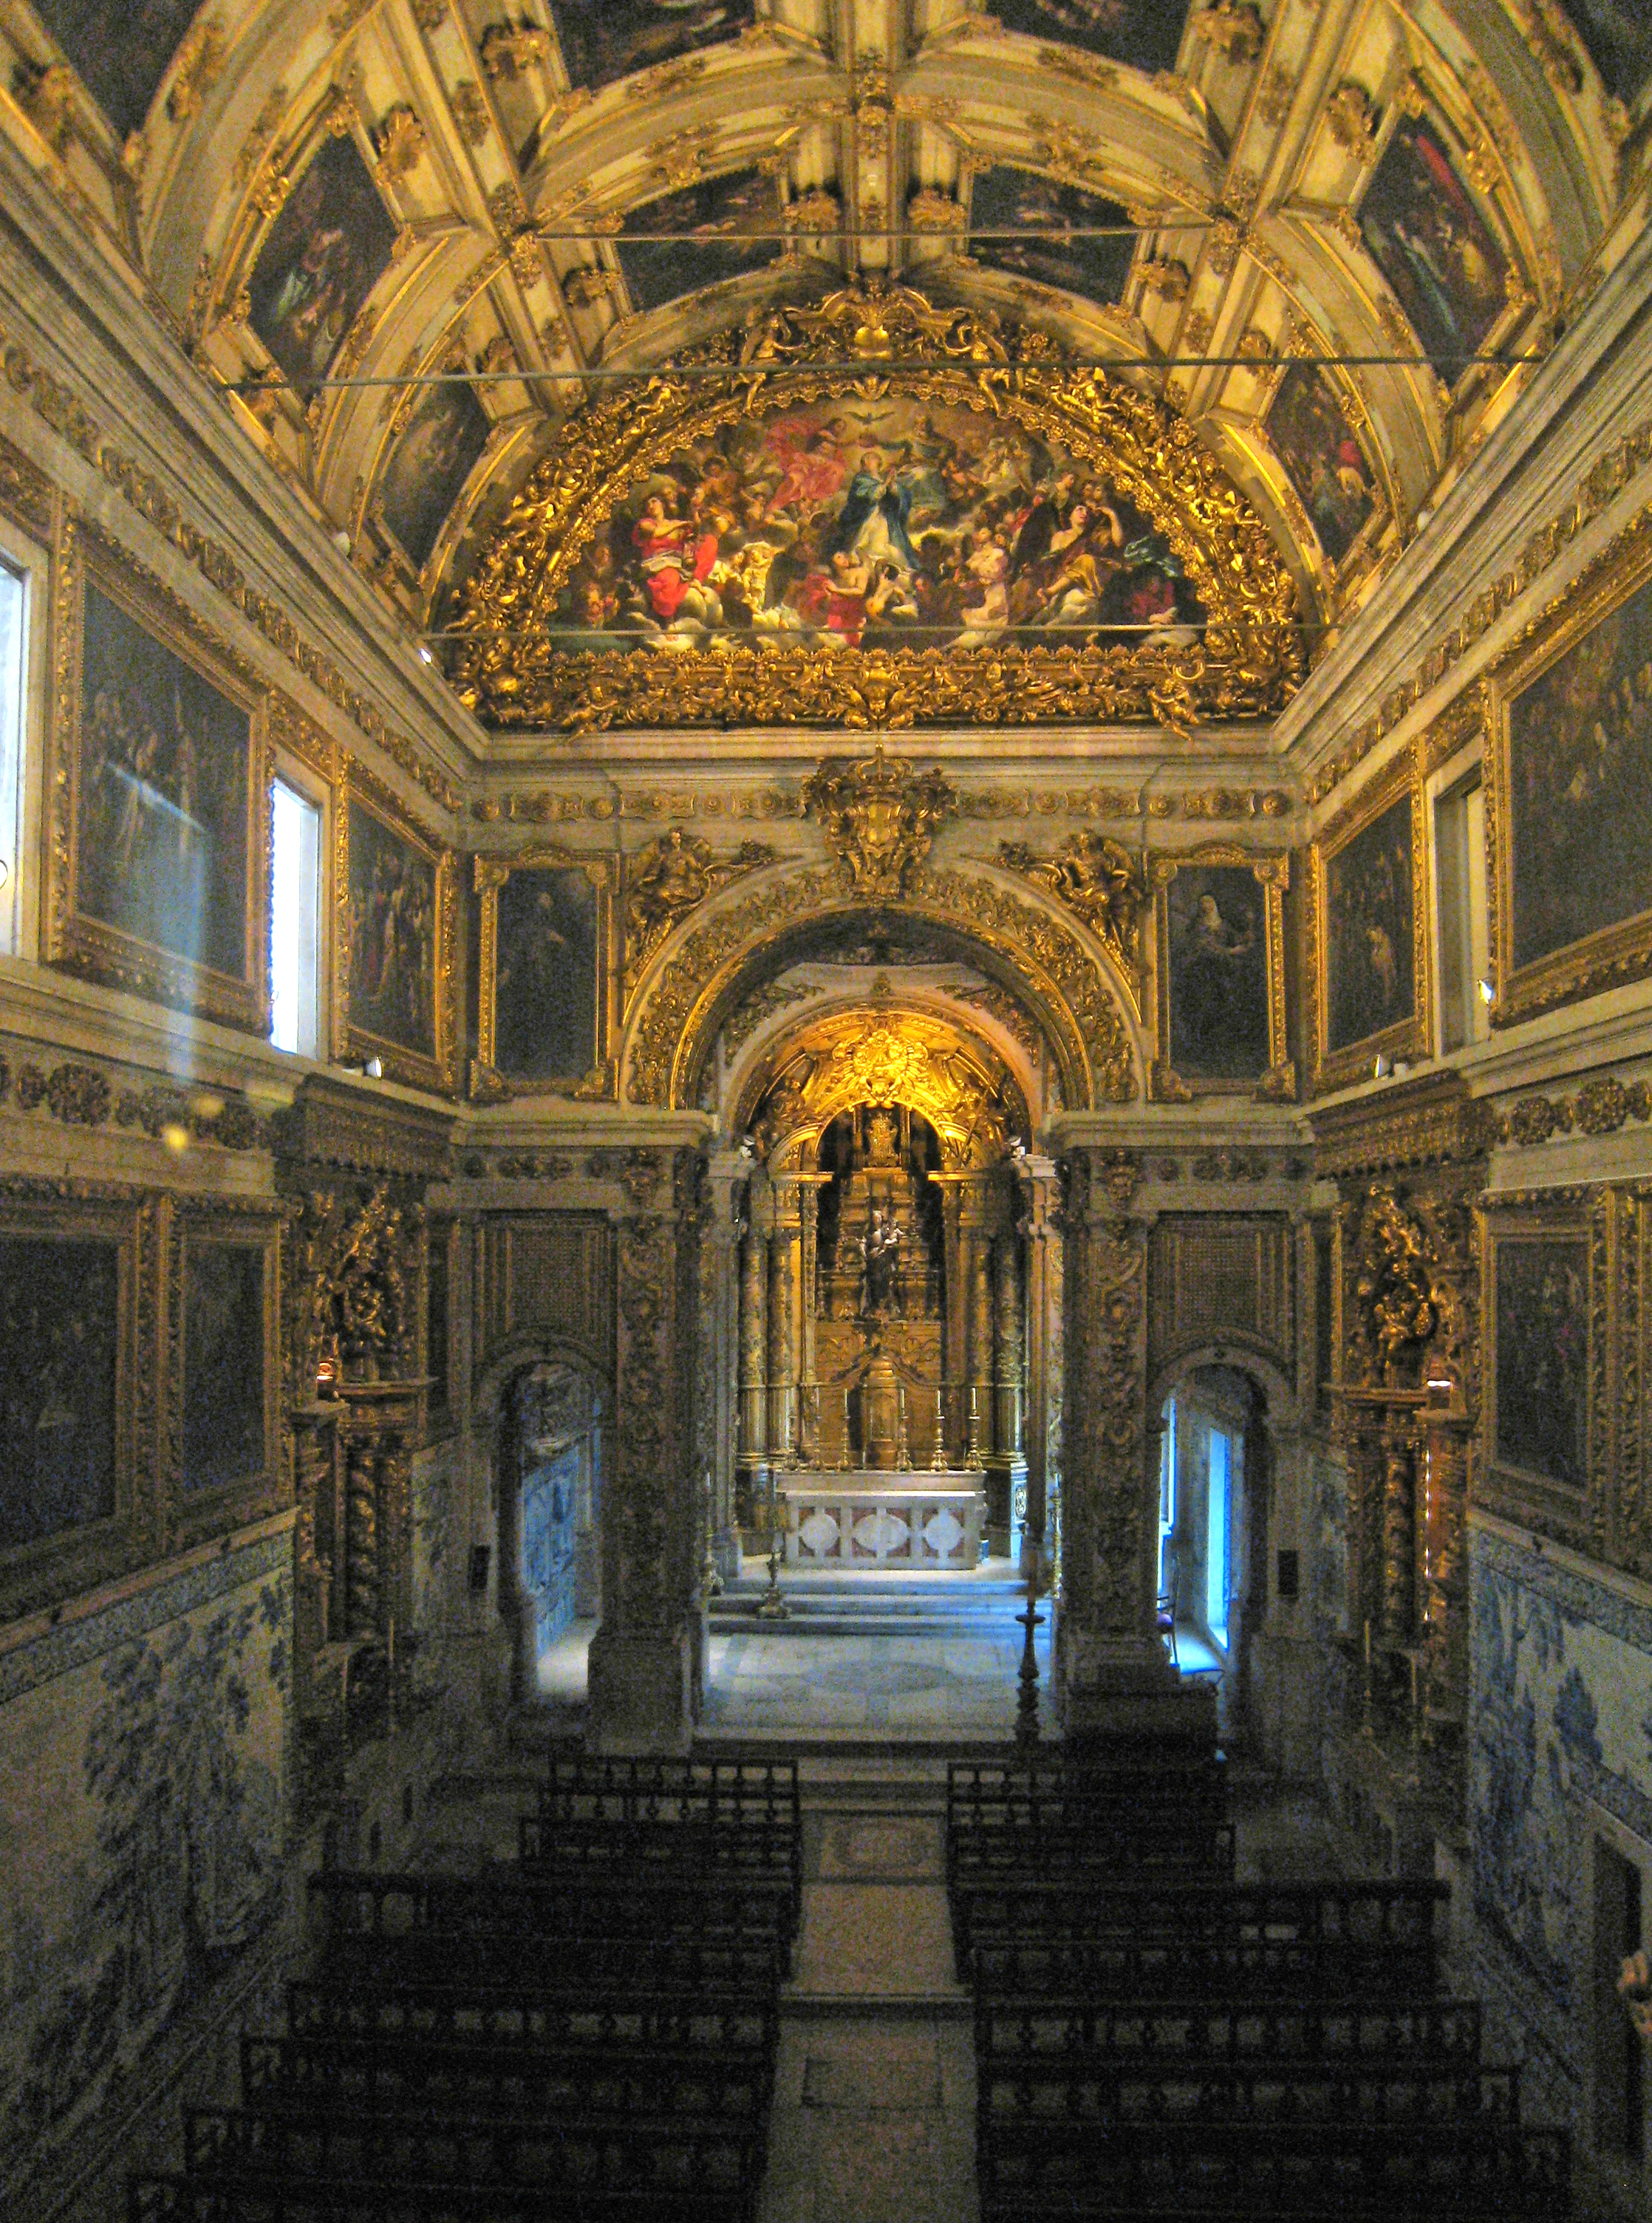 Monastery of the Order of St. Jerome, Lisbon Portugal.jpg